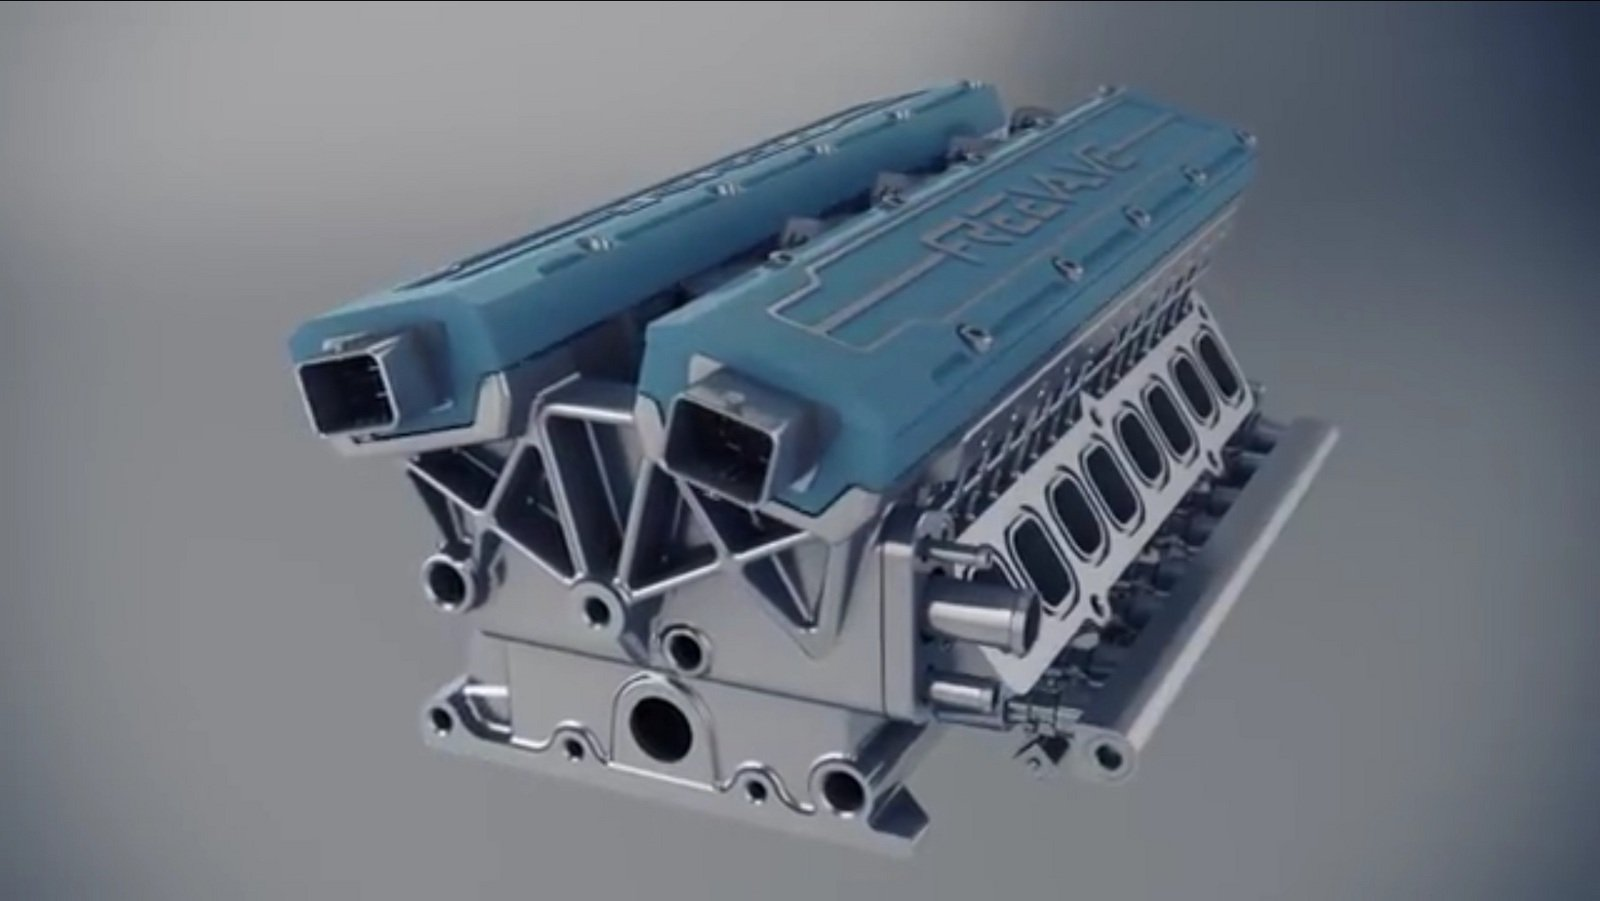 GlideValve Engine Technology Pioneers Camless Valvetrain Concept